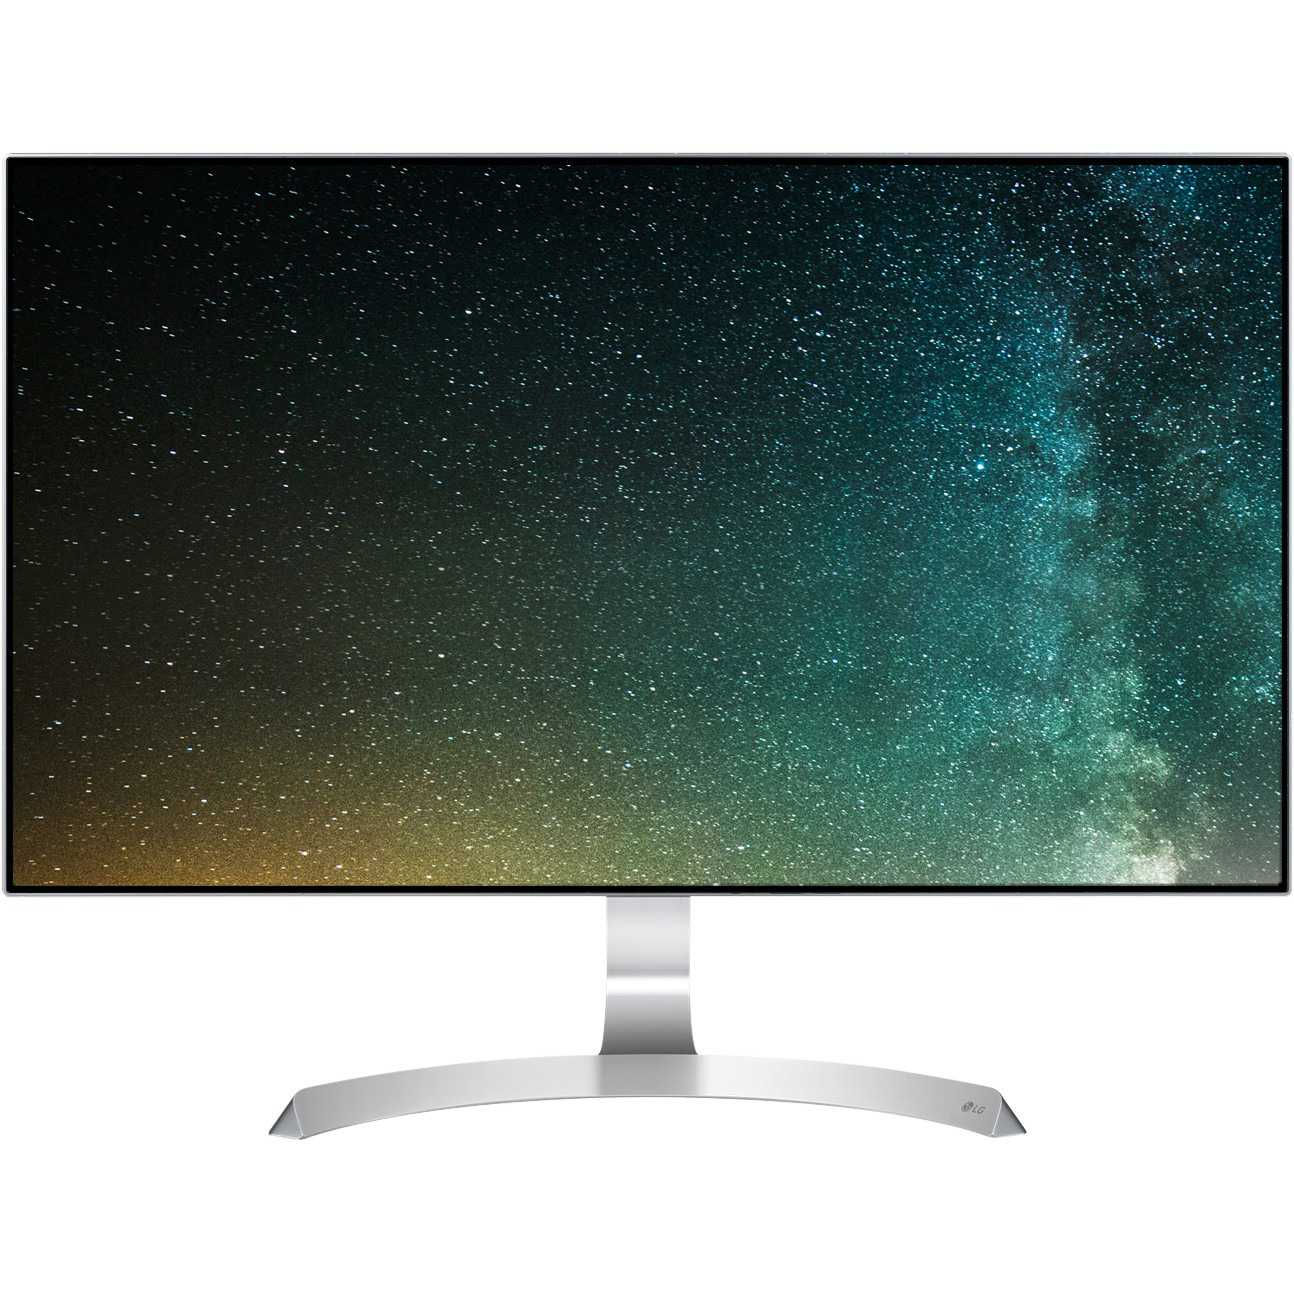 LG 27' FreeSync IPS Borderless 1920x1080 HDMI Gaming Monitor